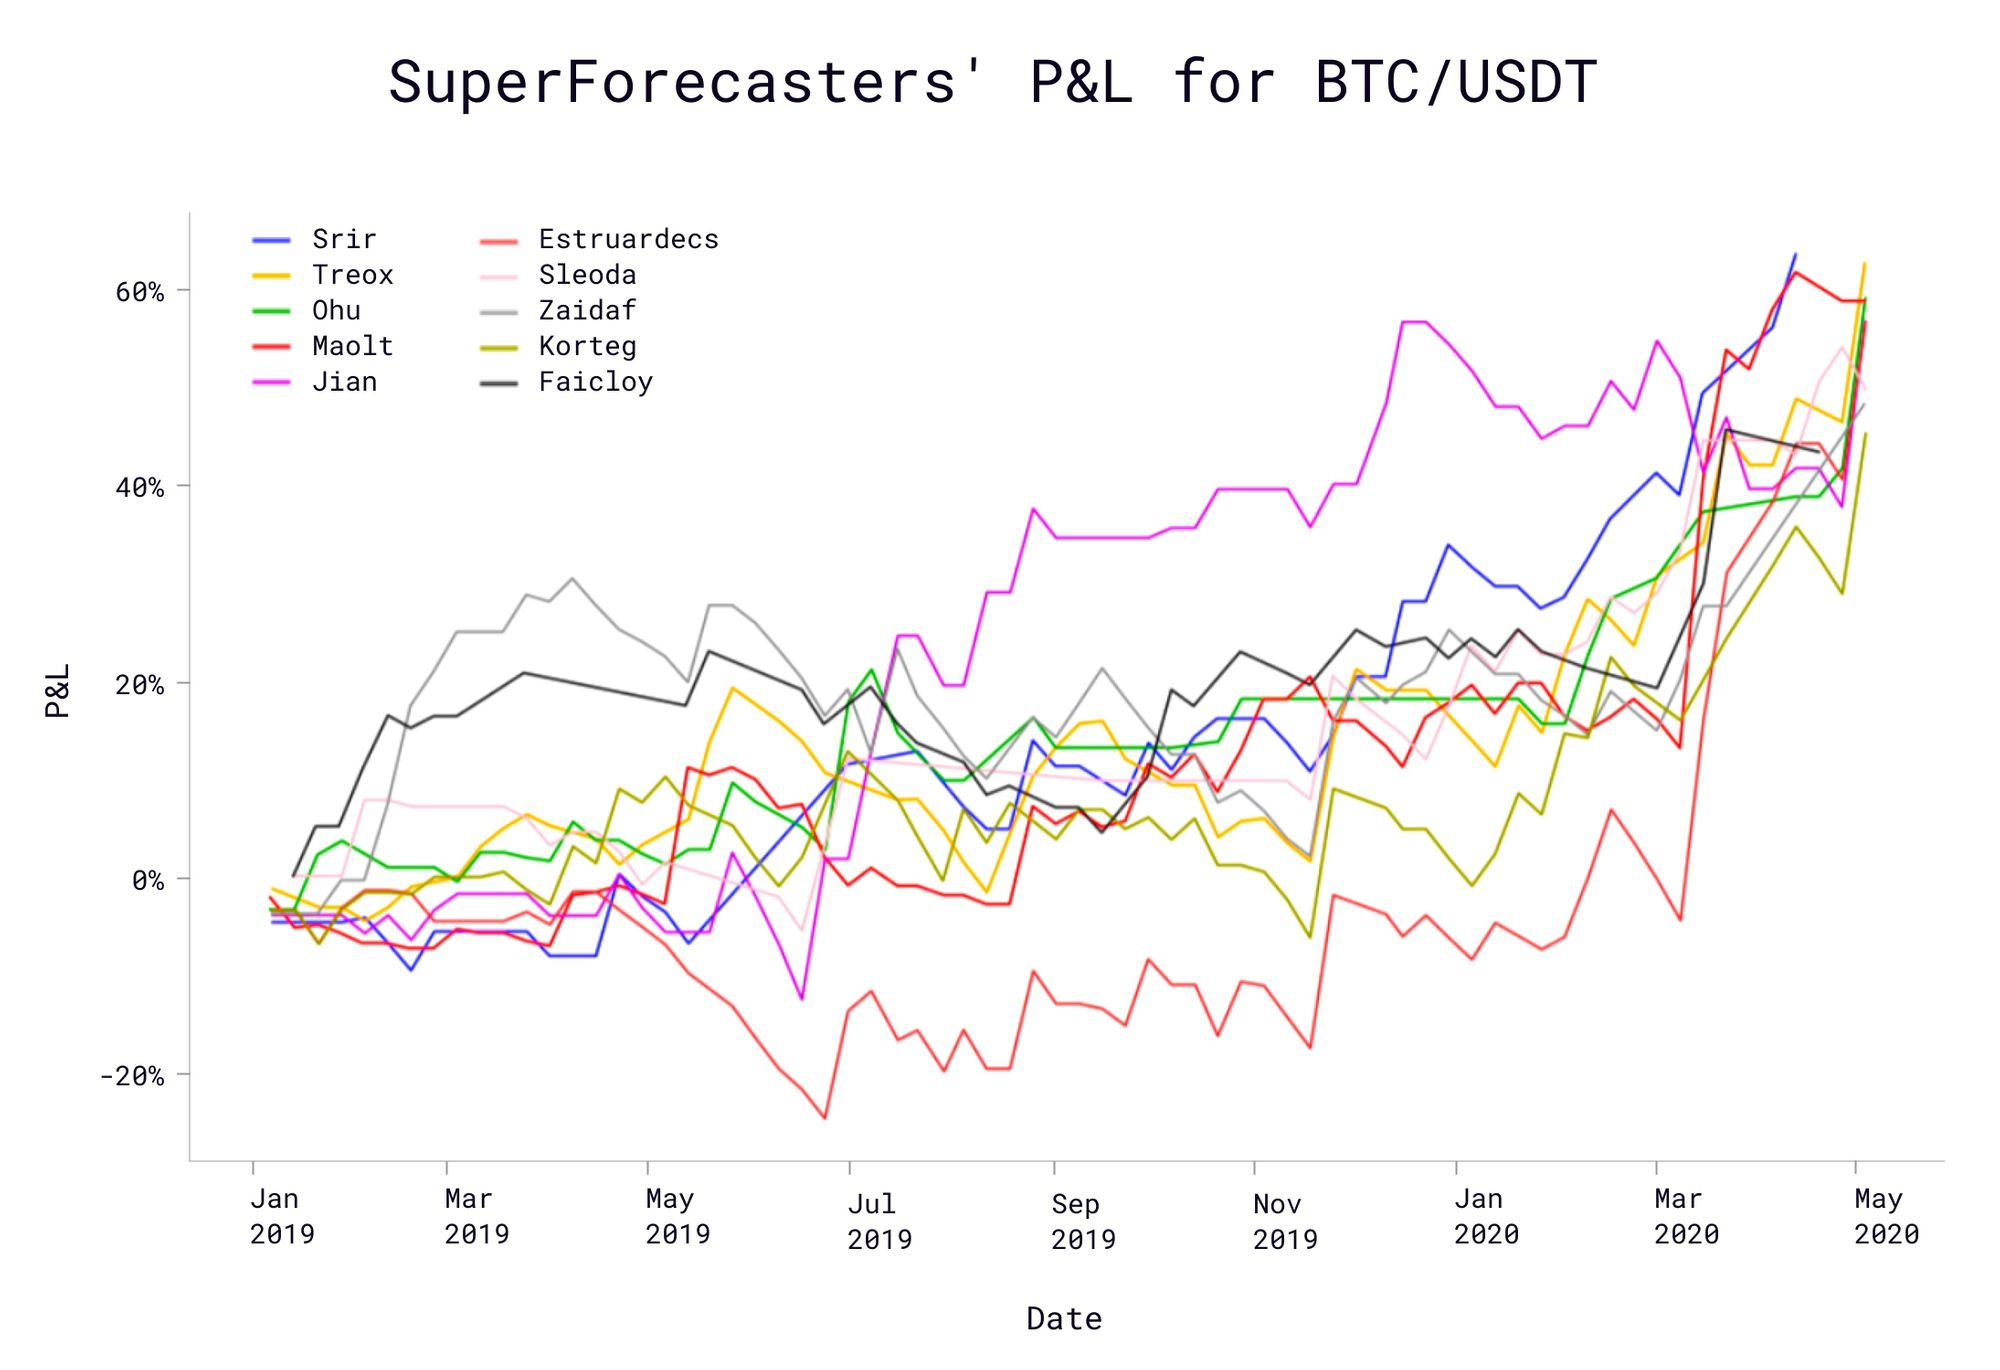 Superforecasters' P&L